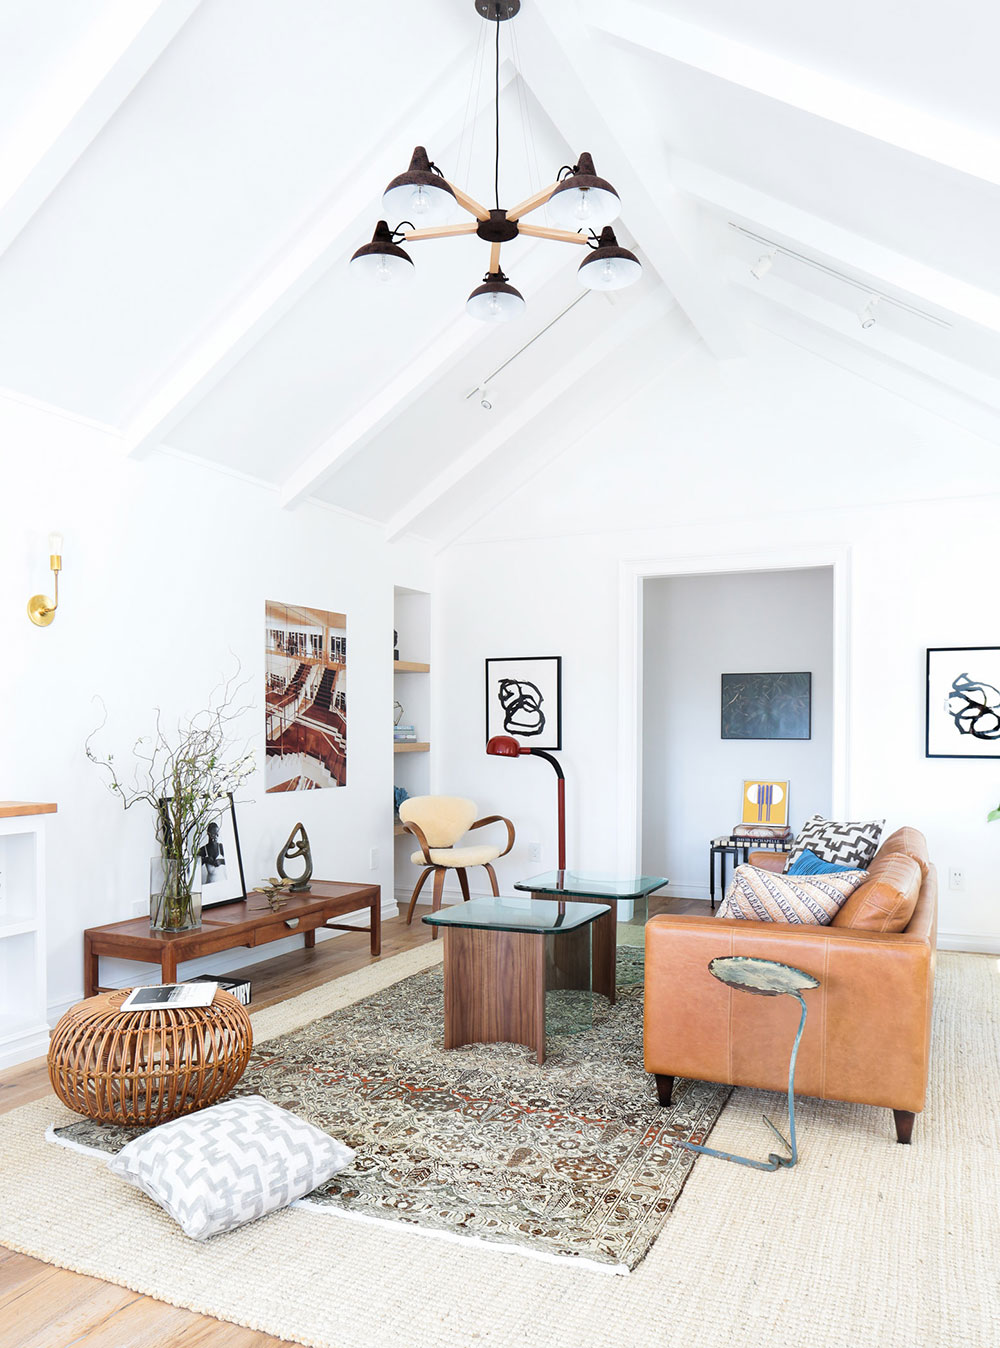 SILVERLAKE  |  FULL HOME RENOVATION